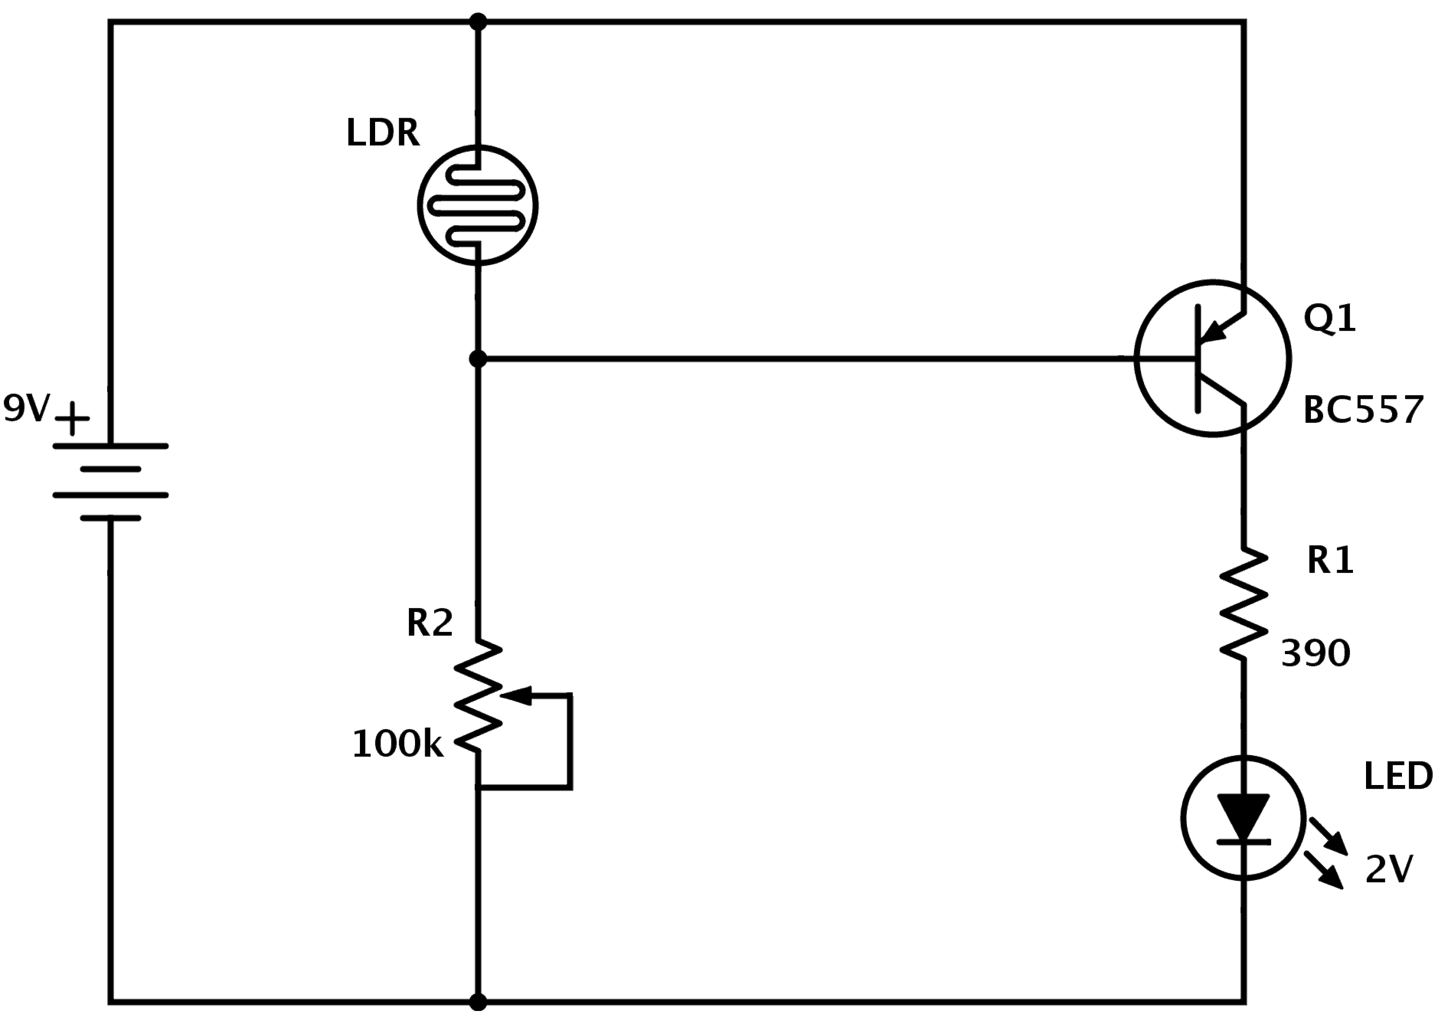 Ldr Circuit Diagram Build Electronic Circuits Wiring For Dusk To Dawn Light Control With Pnp Transistor Dark Detector